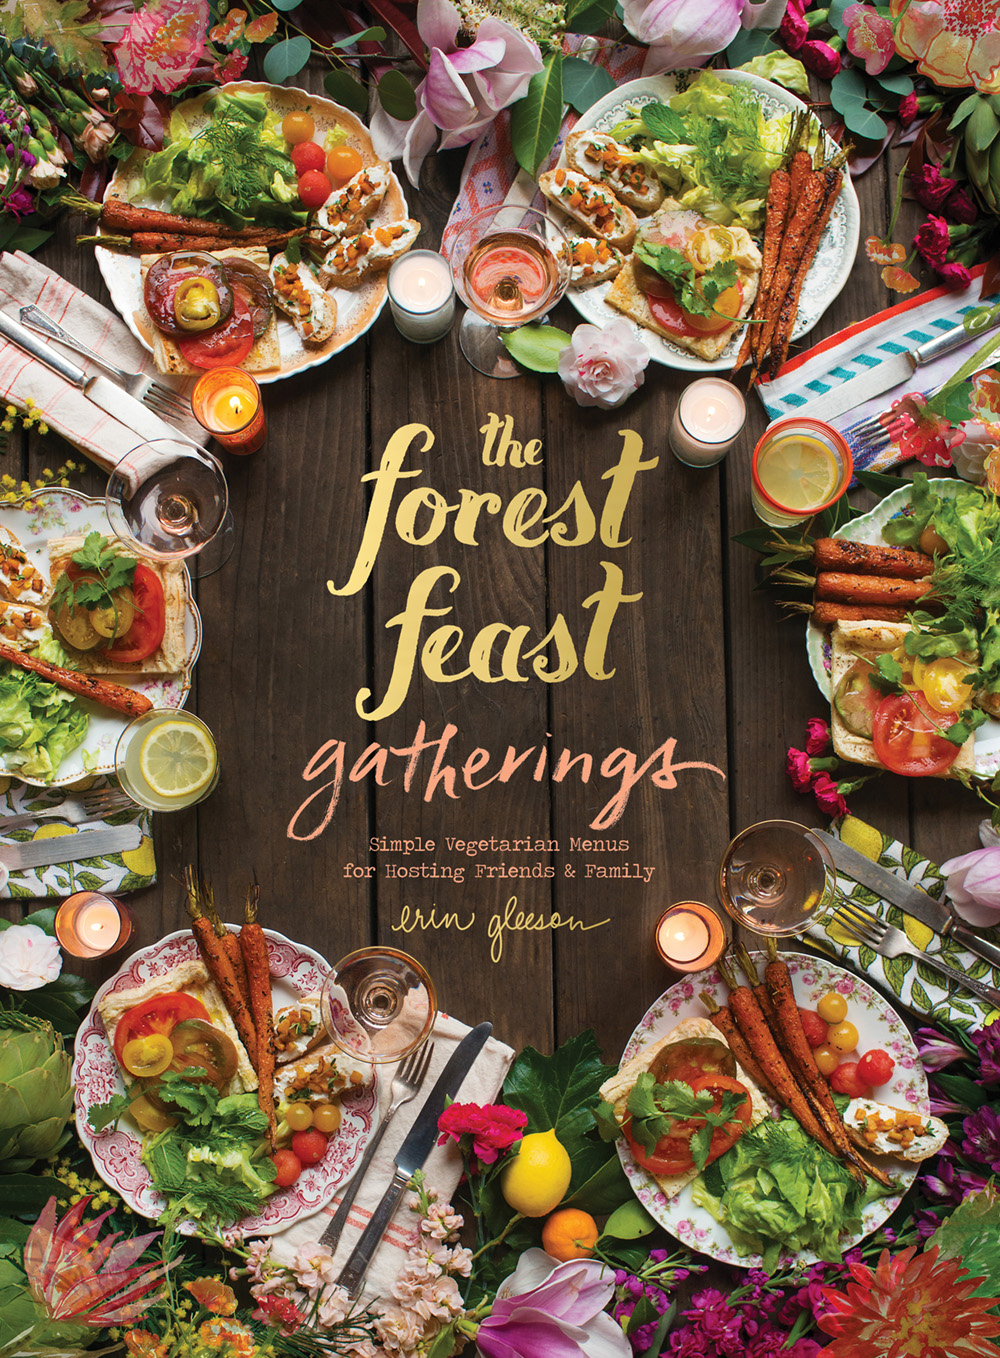 For the last year or so, I have been busy working on my biggest project to date– my third book, an entertaining cookbook called THE FOREST FEAST GATHERINGS. I have just finished it and am so excited to reveal the cover (here's a behind-the-scenes pic of the cover shoot!). It comes out September 27, 2016, but is already available for PREORDER!! It's all new material (with a few blog favorites) and features menus for small gatherings on any occasion – everything from a summer dinner party, to a cocktail party, to brunch. For more recent news in my newsletter, click here.  Happy weekend!